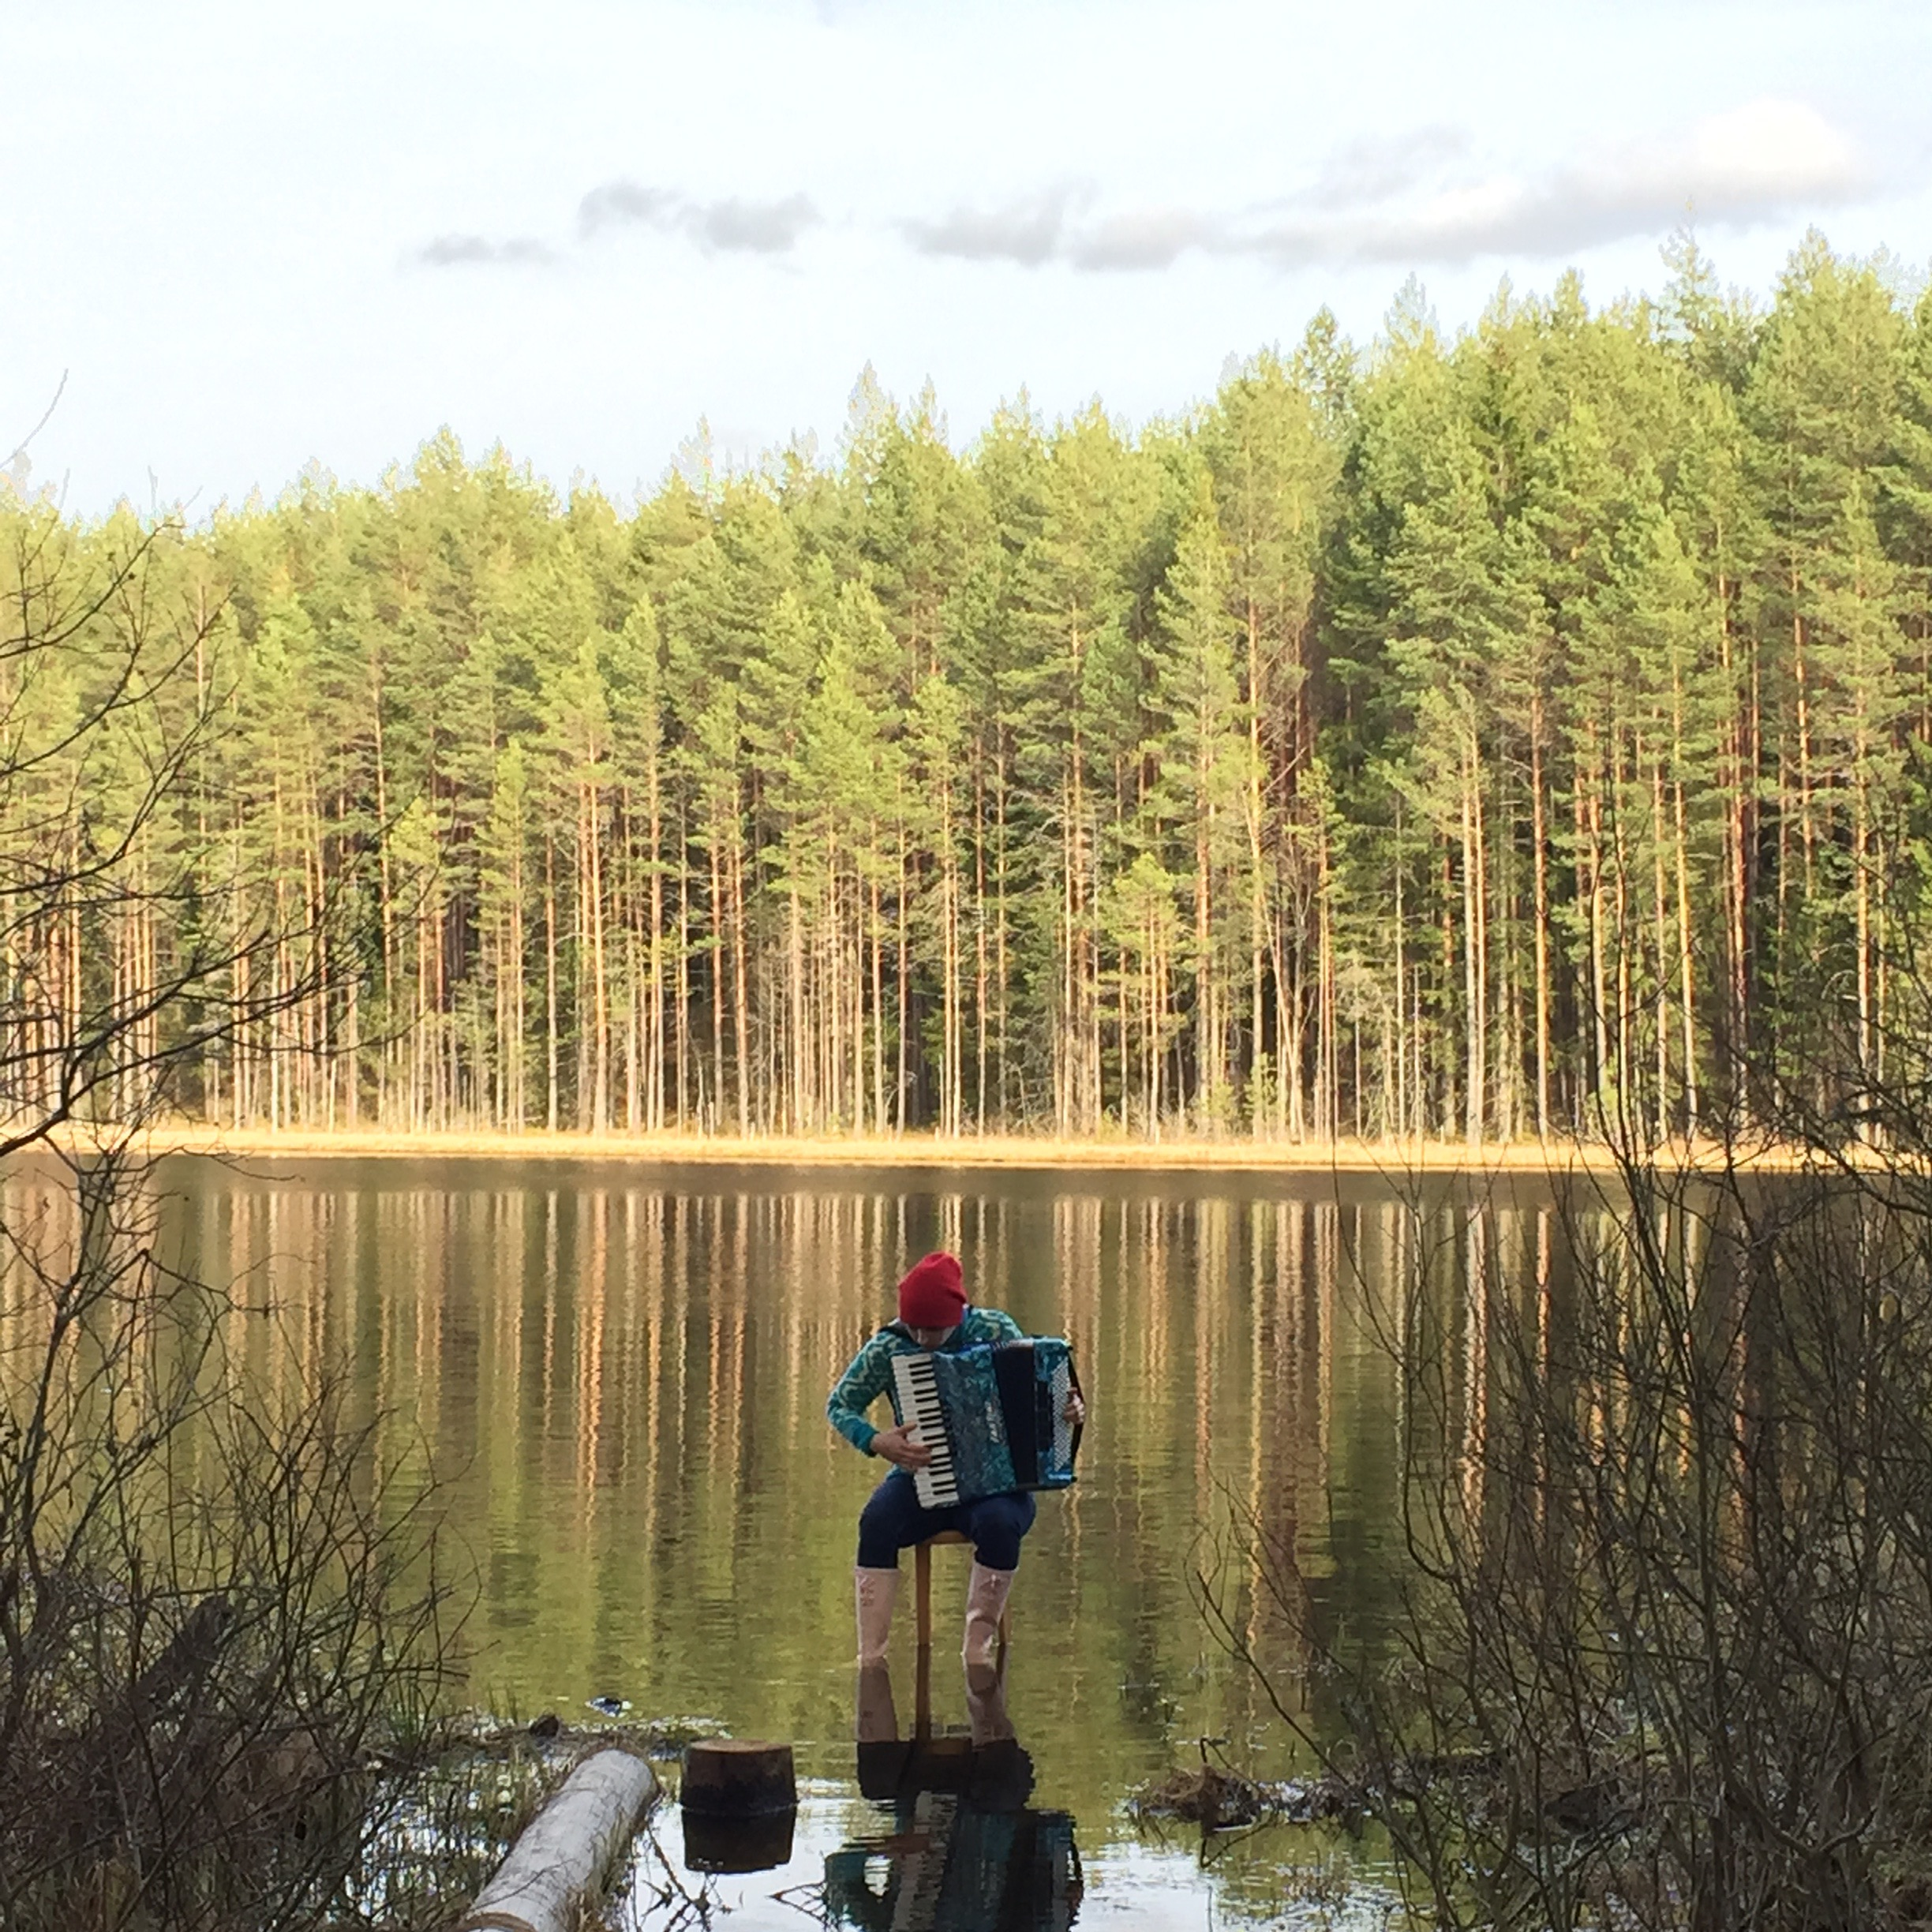 That's me playing in the bog lake in South Estonia during the international residency project  Active crossover  in 2015.